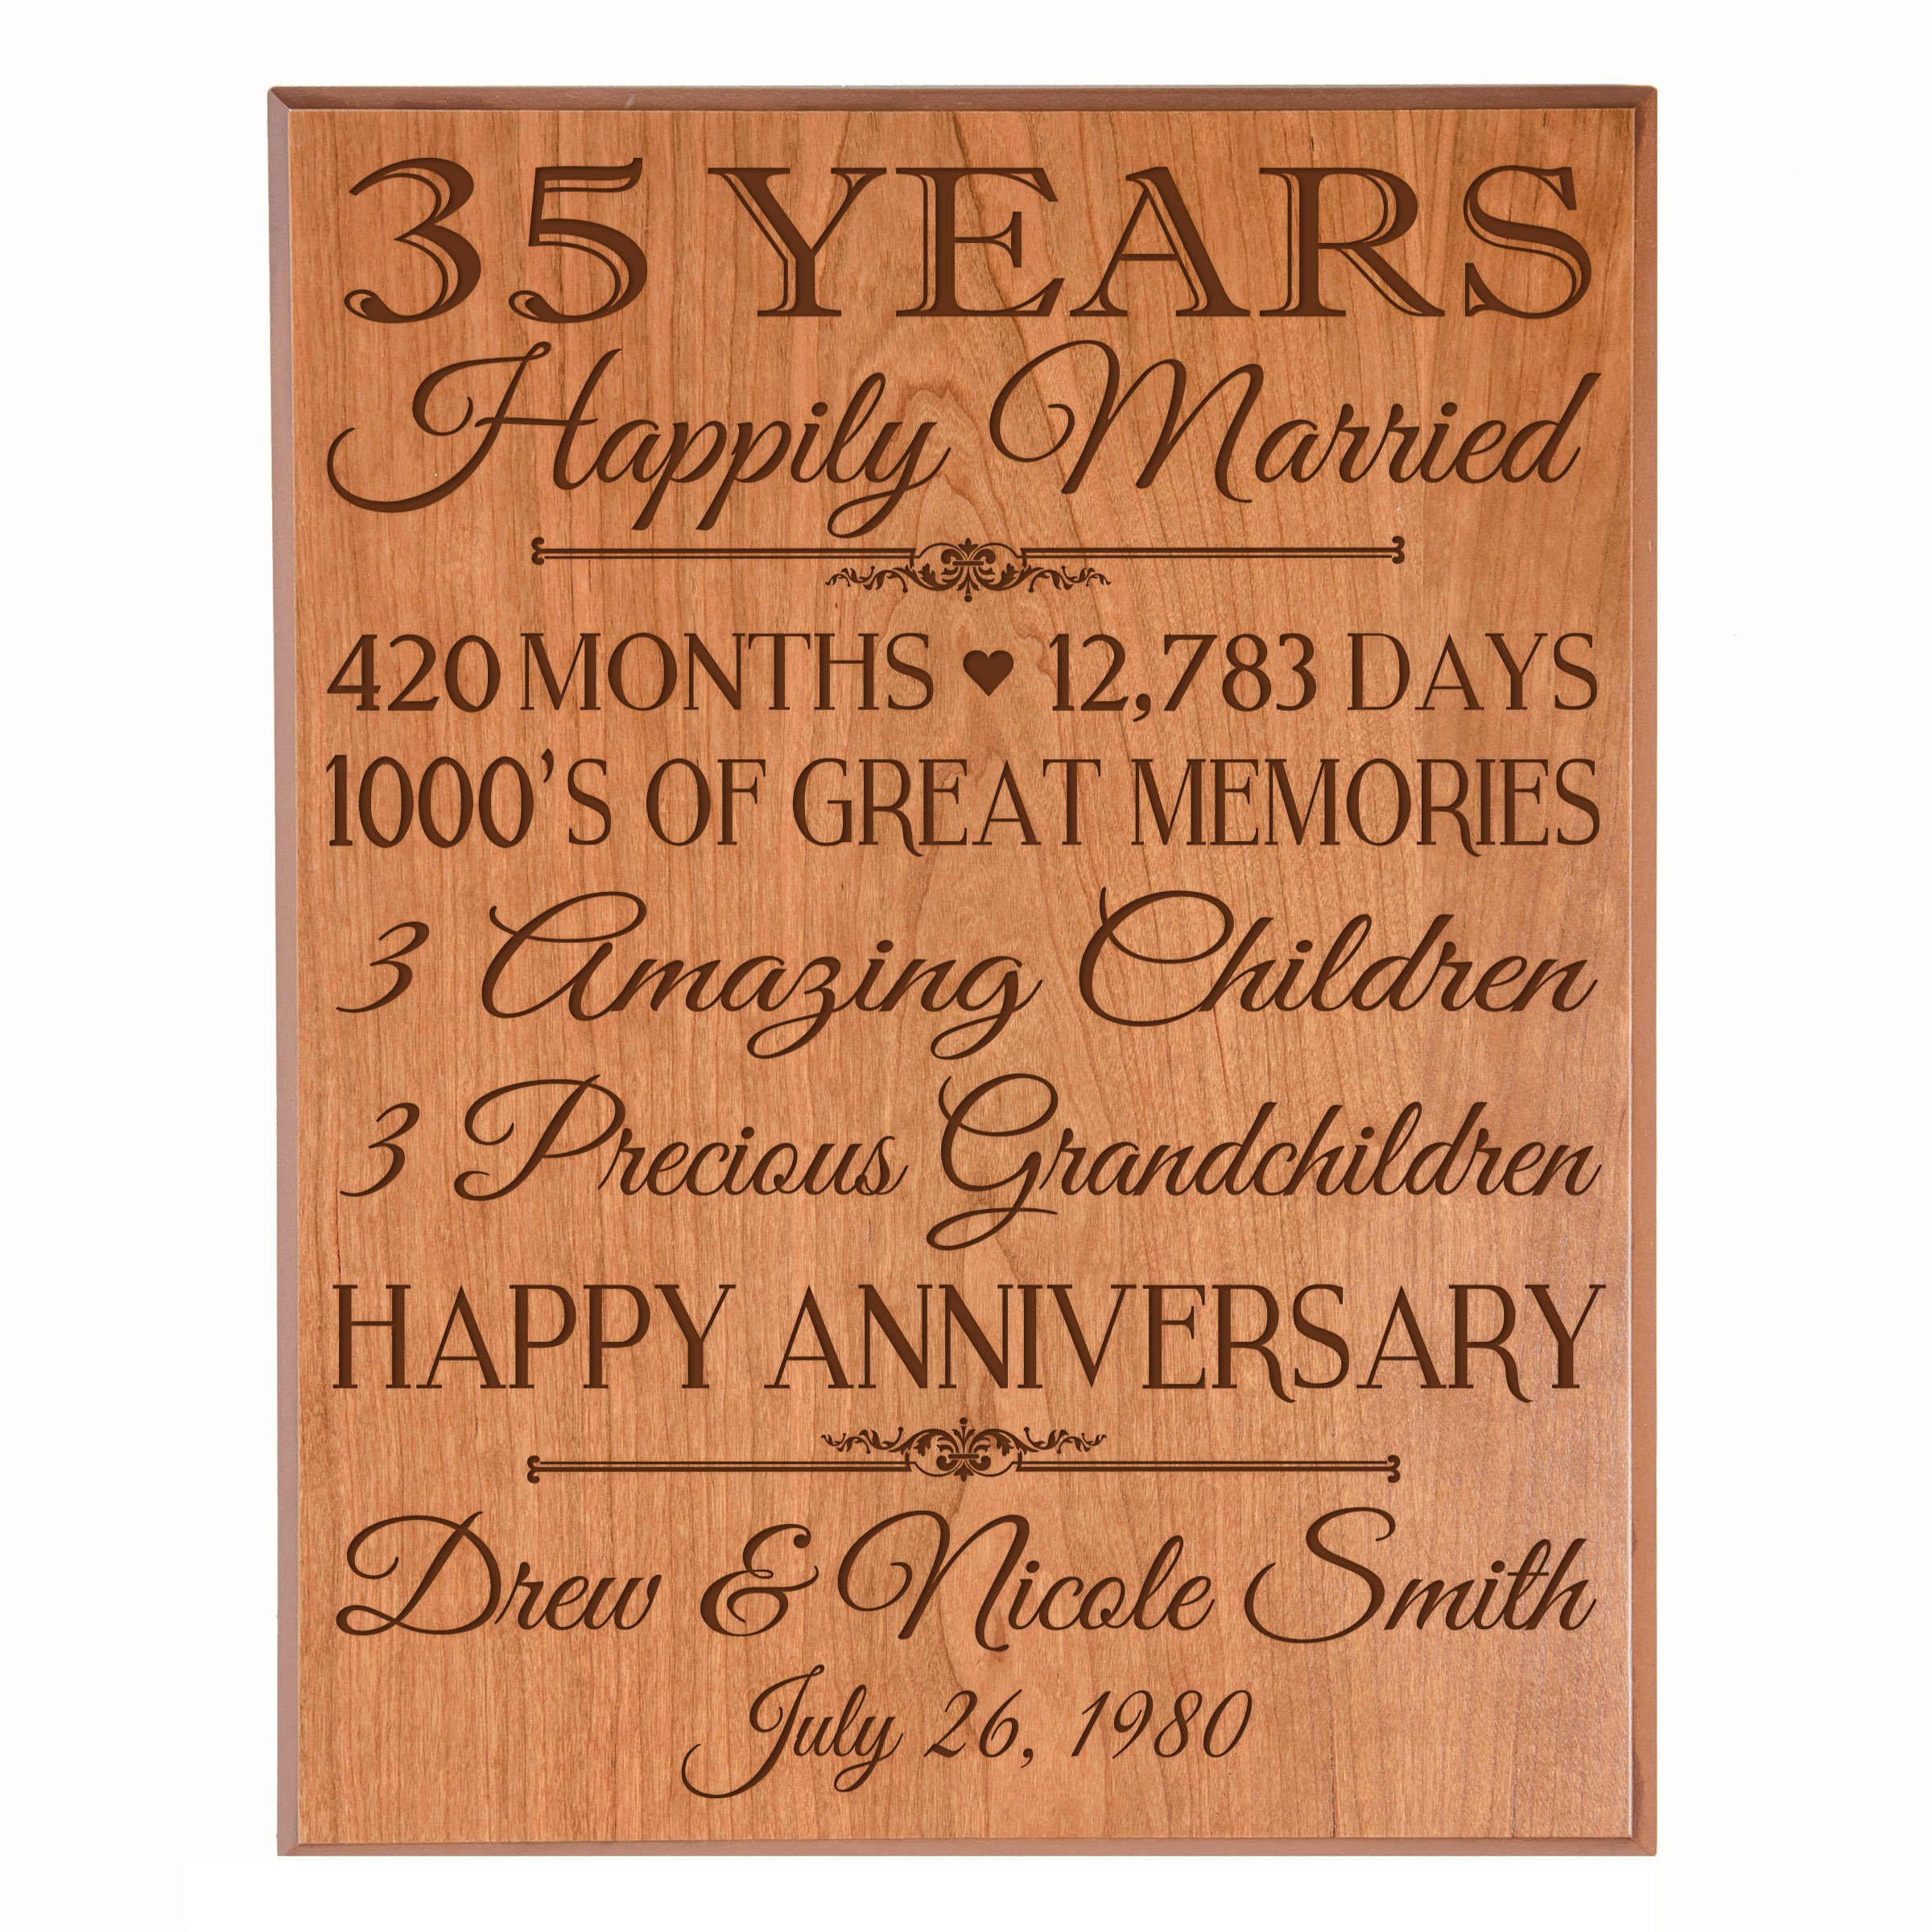 """Personalized 35th Anniversary Gifts for him her Couple parents, Custom Made 35 year Anniversary Gifts ideas Wall Plaque 12"""" x 15"""" By Dayspring Milestones (Cherry Veneer Wood)"""